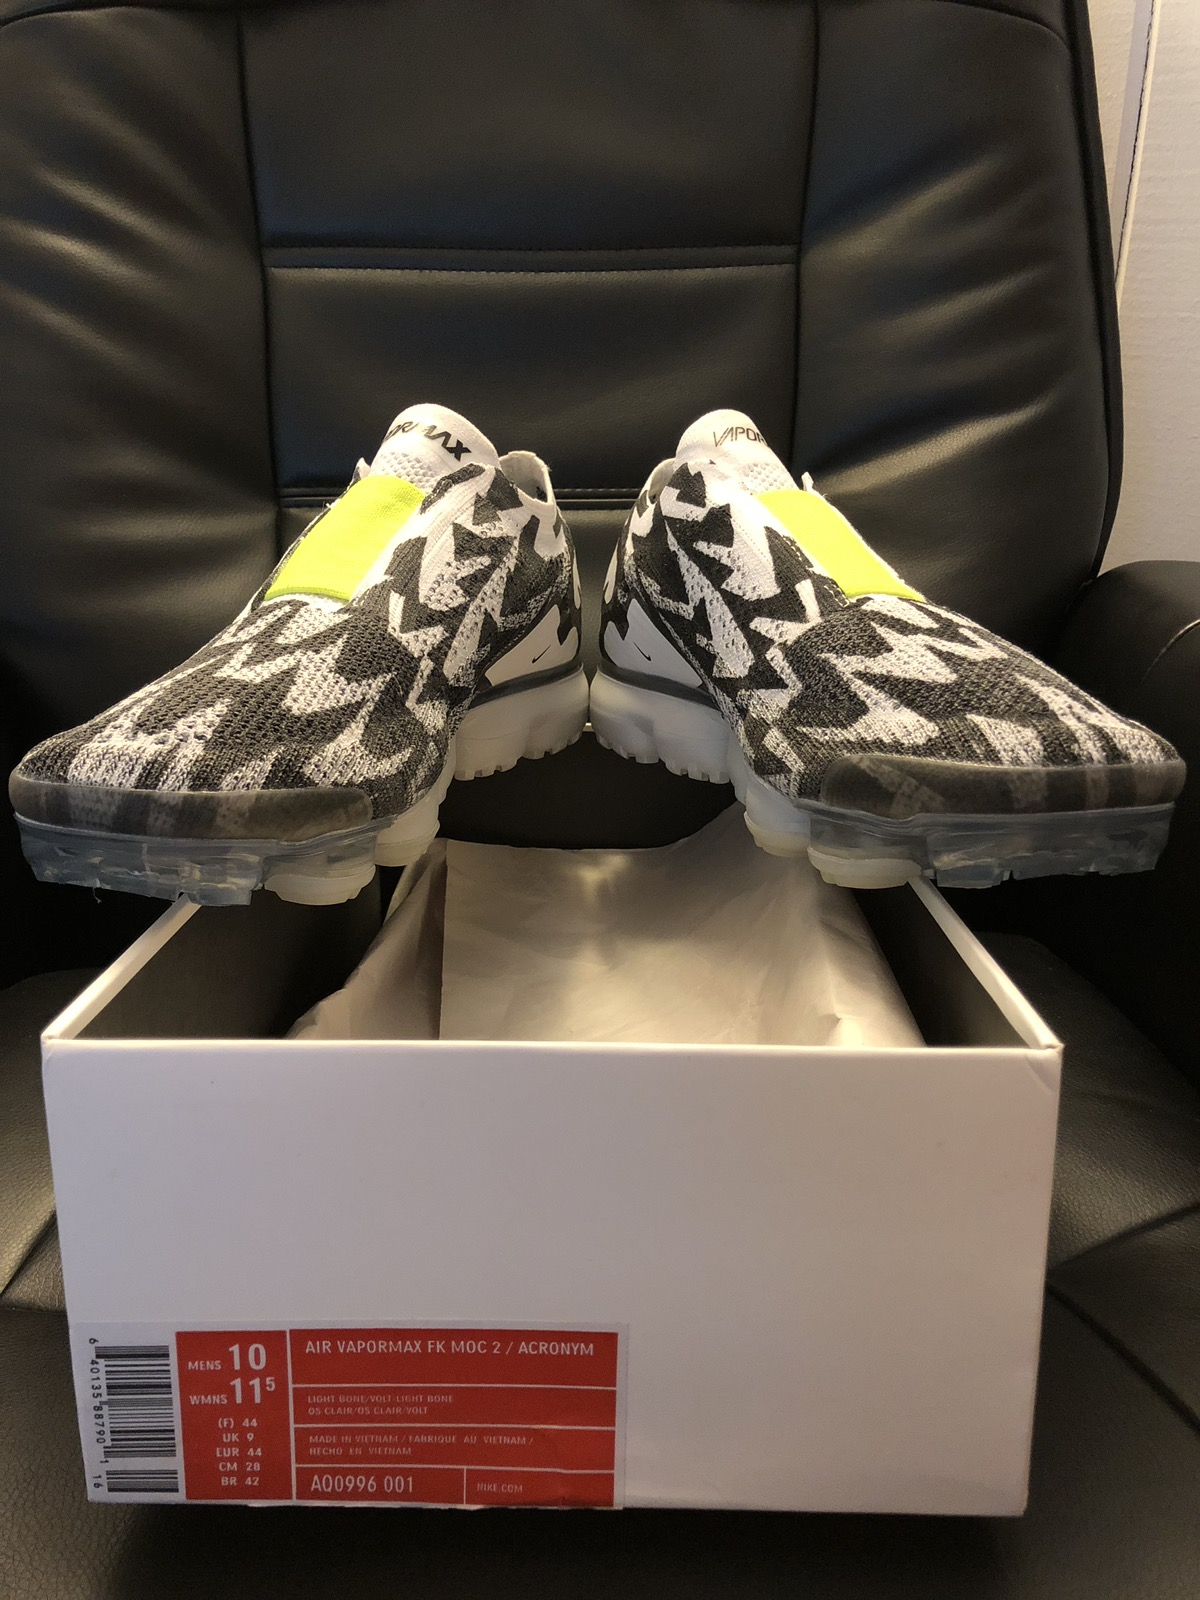 2341fc9c0de7 Nike Nike Vapormax Moc 2   Acronym Size 10 - Low-Top Sneakers for Sale -  Grailed